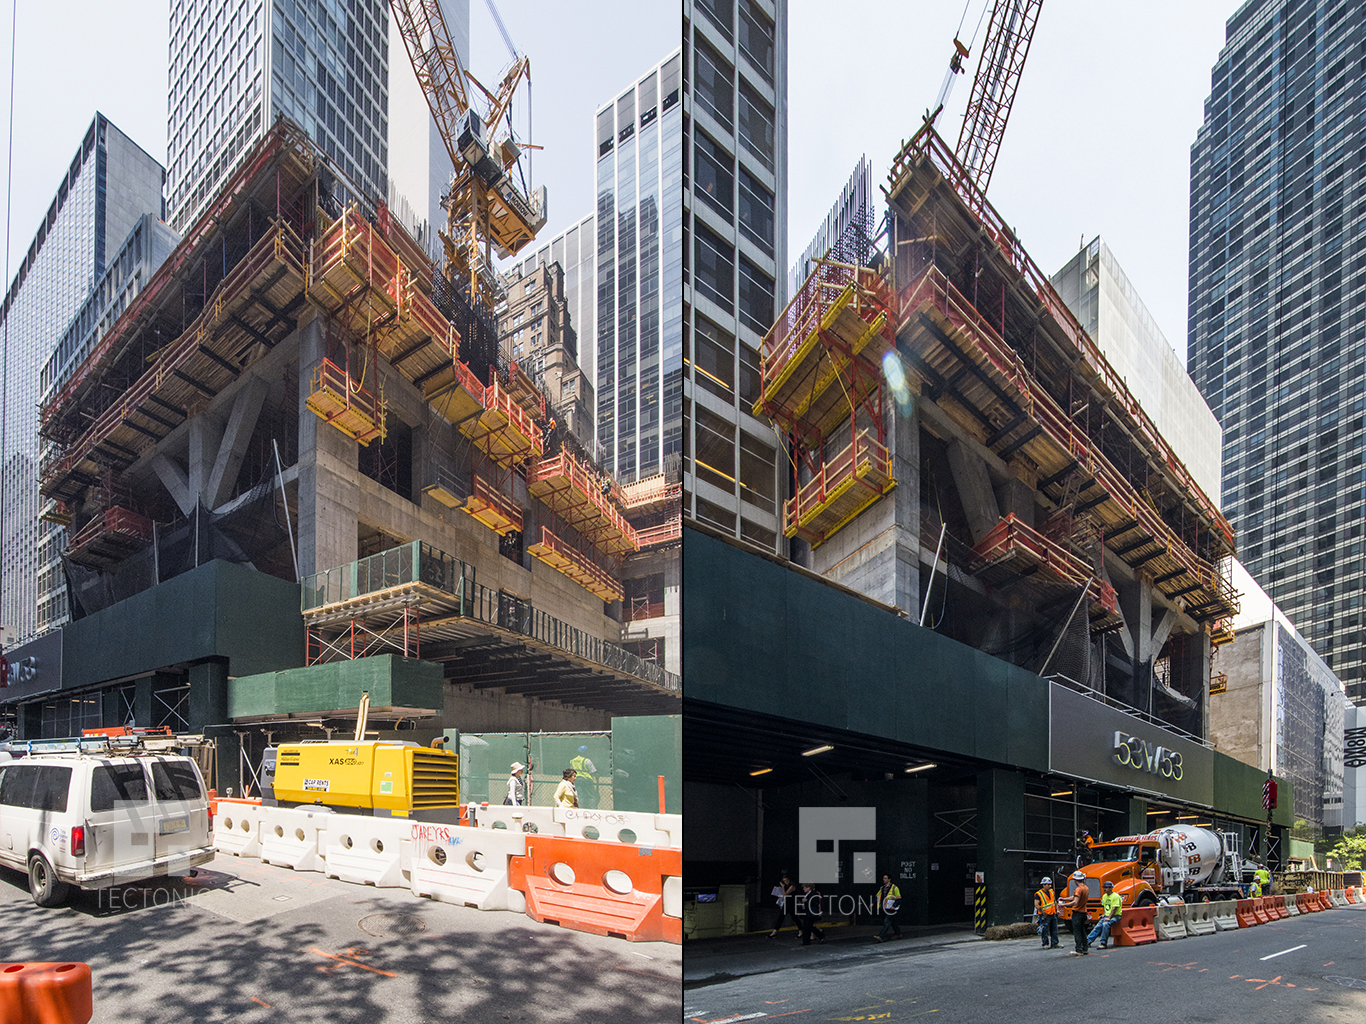 53w53 Shows Its Exoskeleton At 53 West 53rd Street